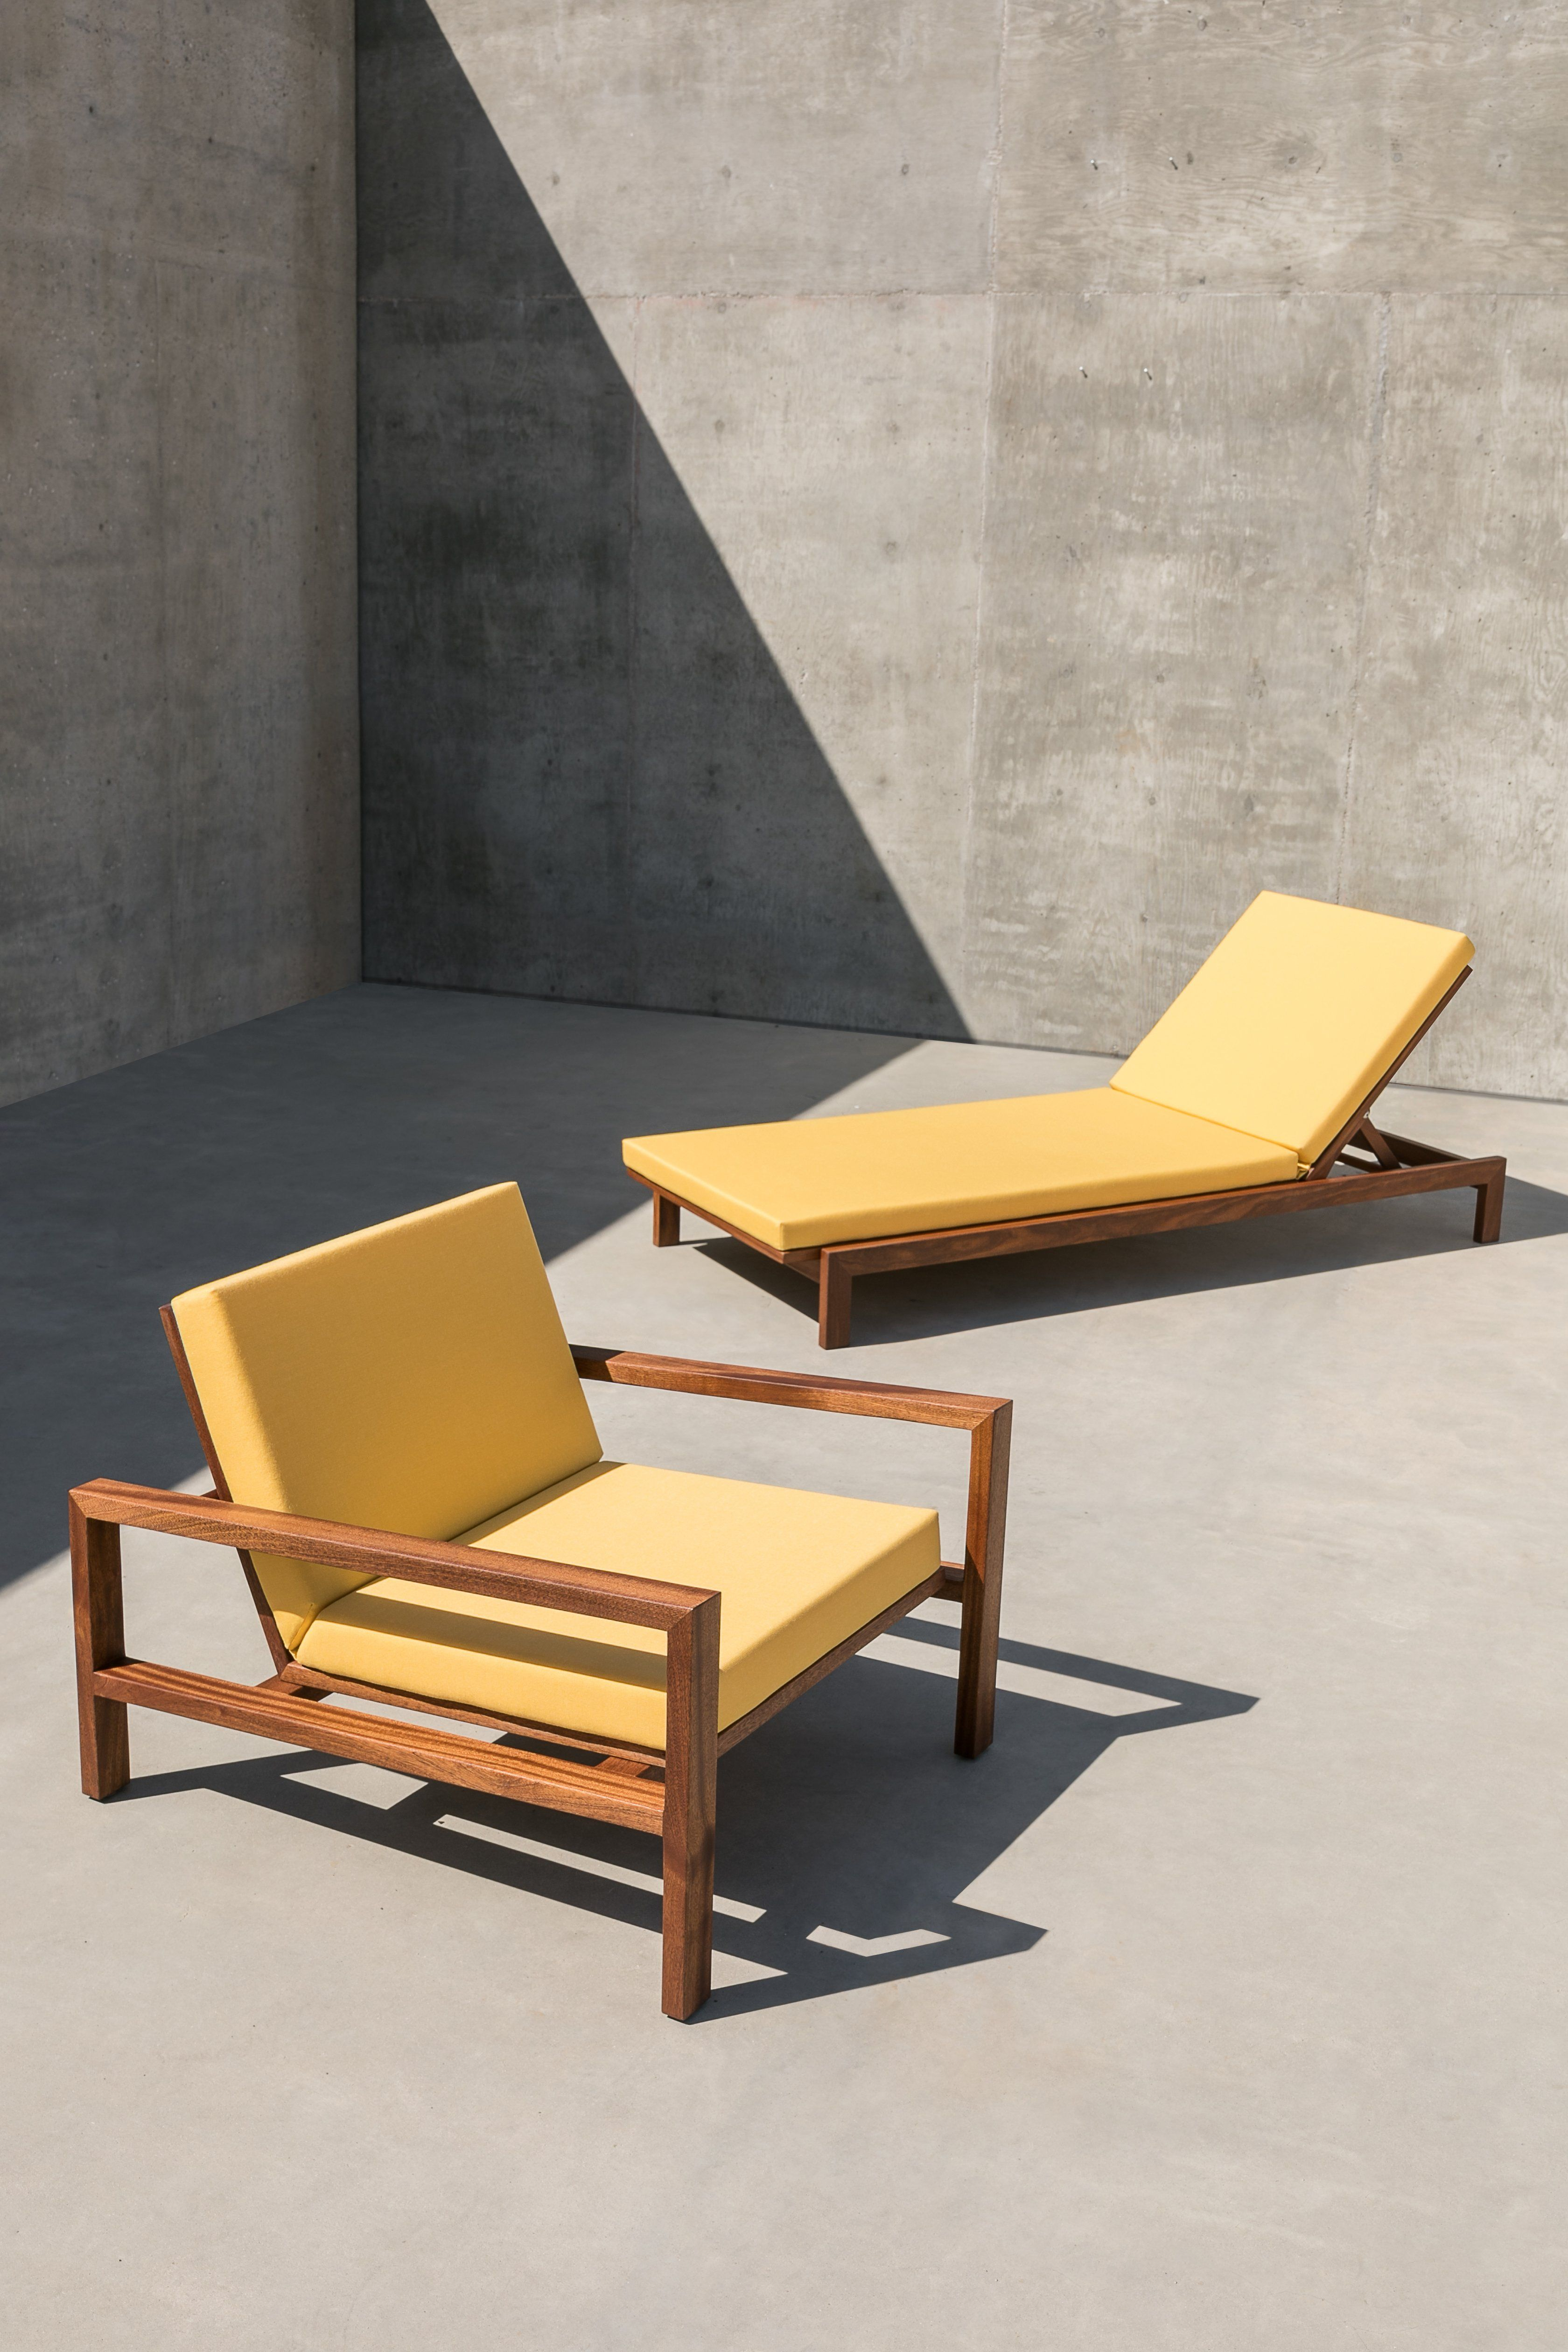 Case Study Furniture Solid Wood Chaise And Lounge Chair Bundle Pack Case Study Furniture Furniture Wood Lounge Chair